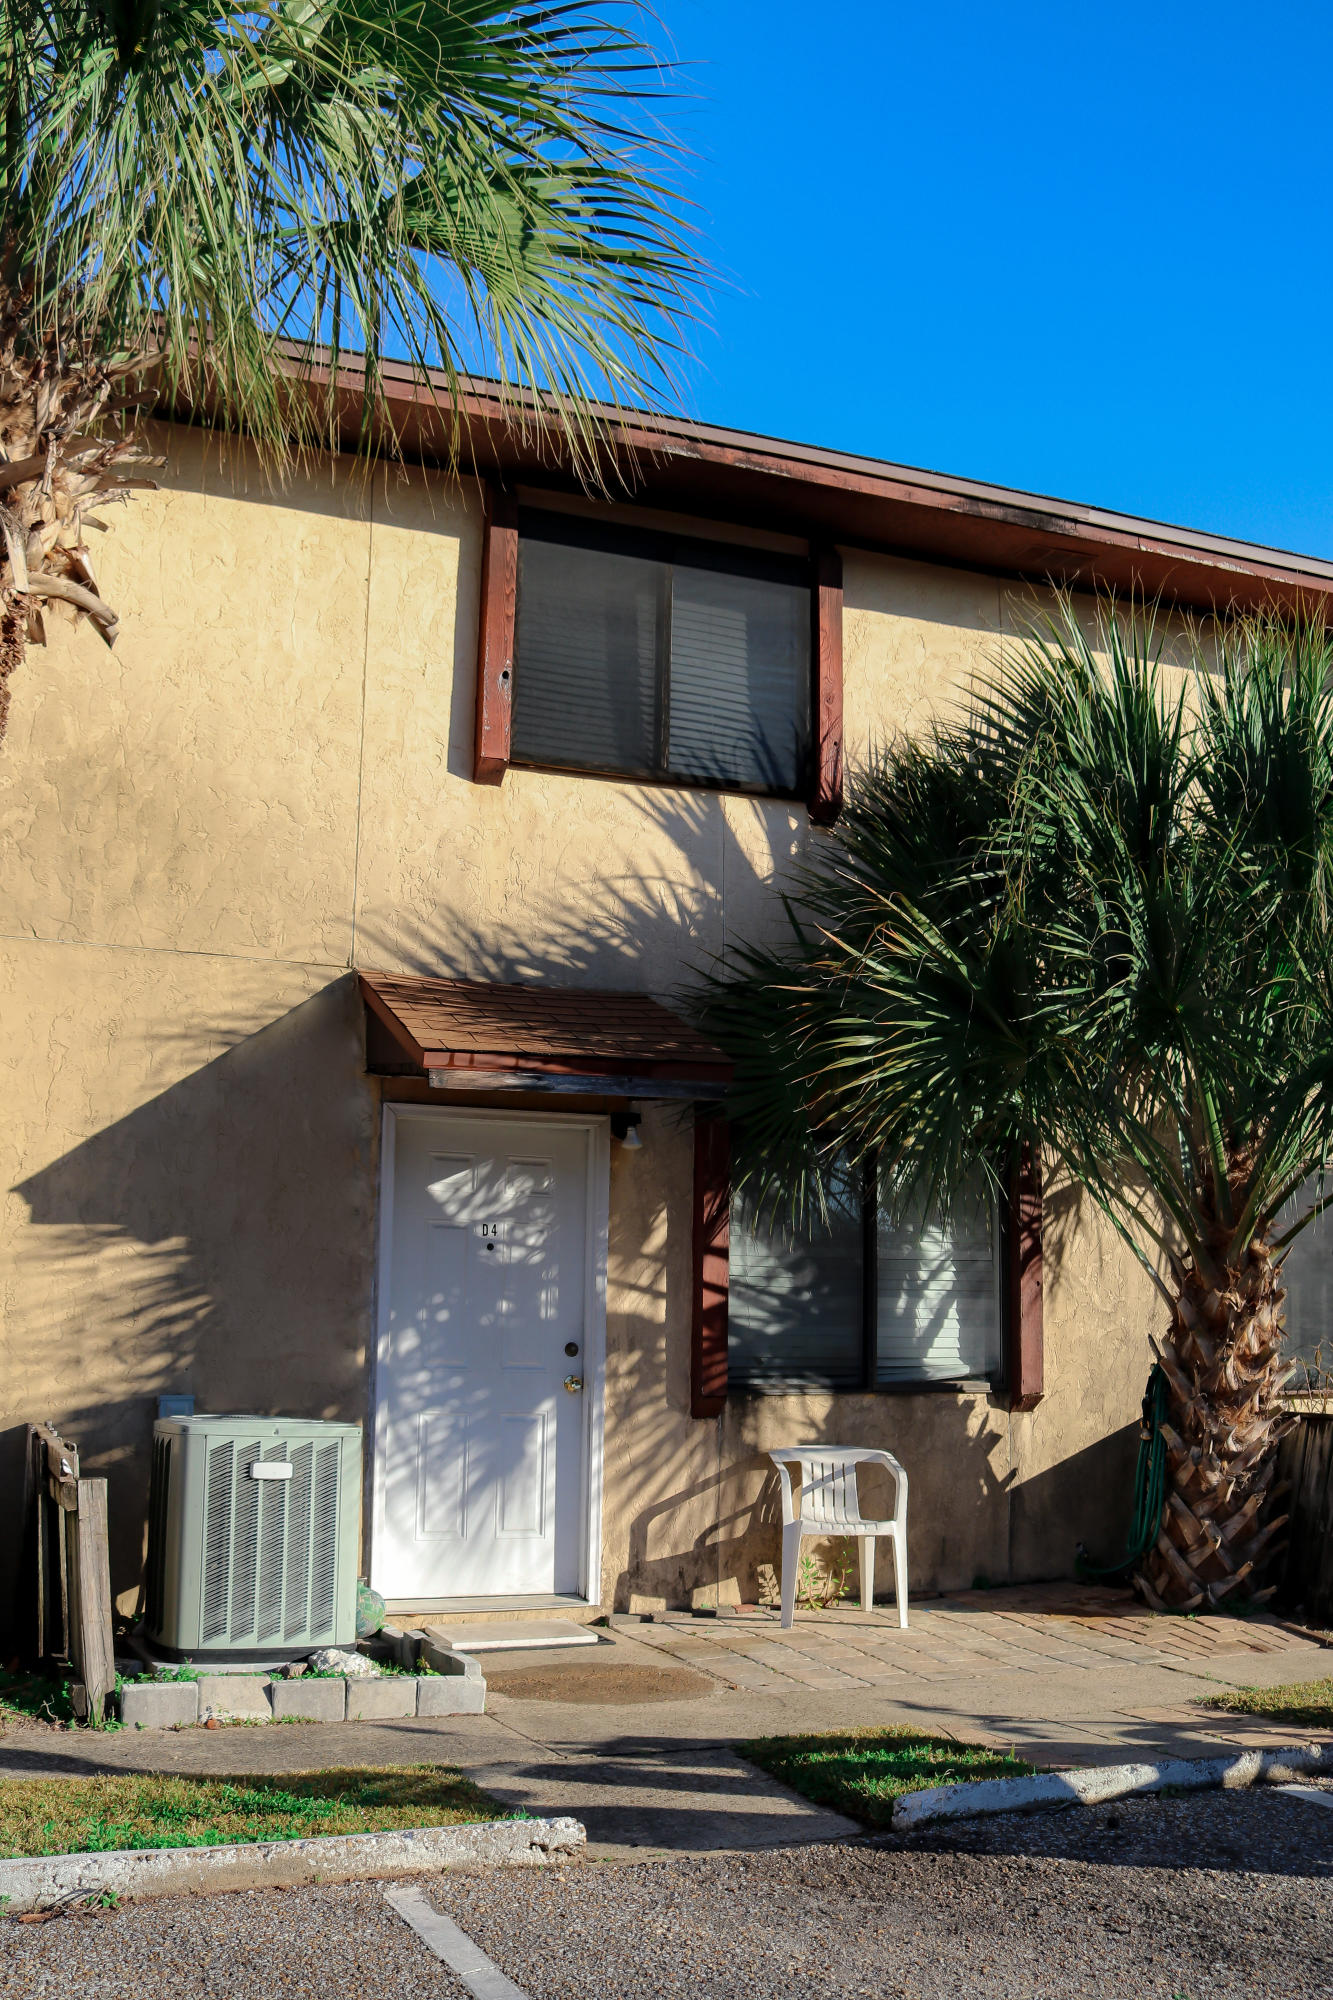 COMING SOON! This unit is being sold AS-IS with a $4K allowance at closing for any repairs or update